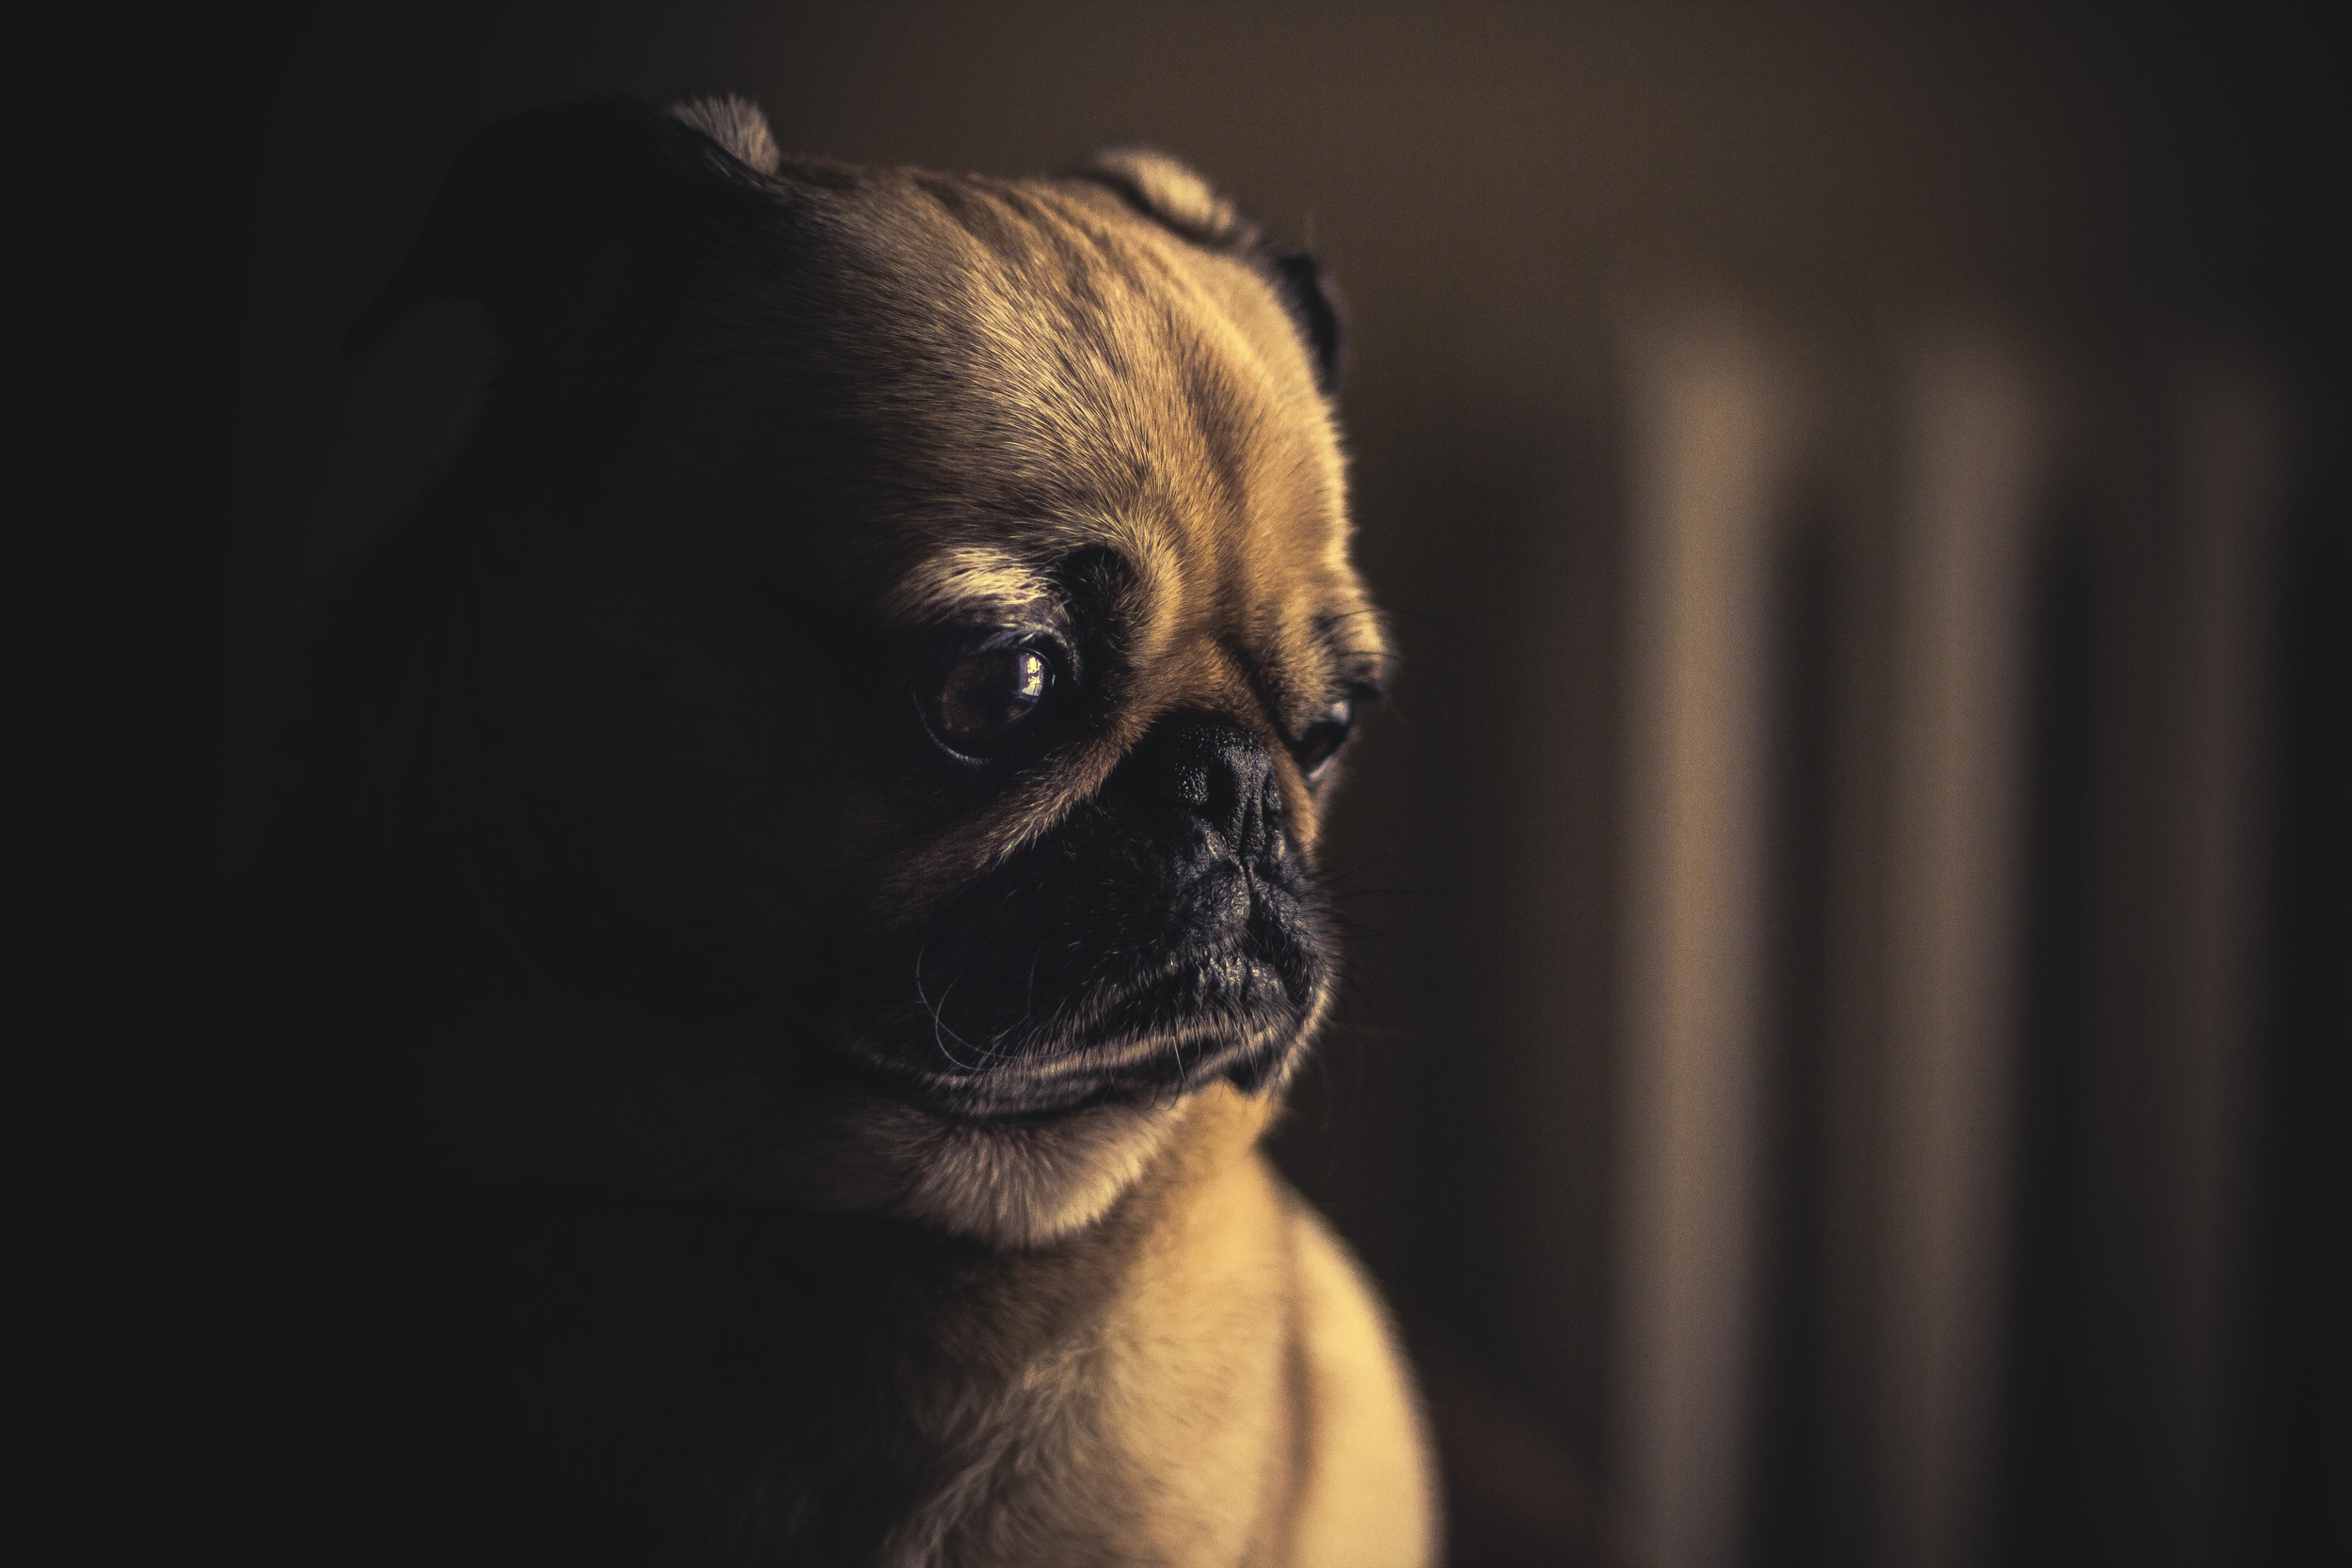 This sad dog has a cluttered caption. (Photo by Matthew Weibe, reproduced under a Creative Commons Zero license: https://unsplash.com/photos/hnYMacpvKZY)